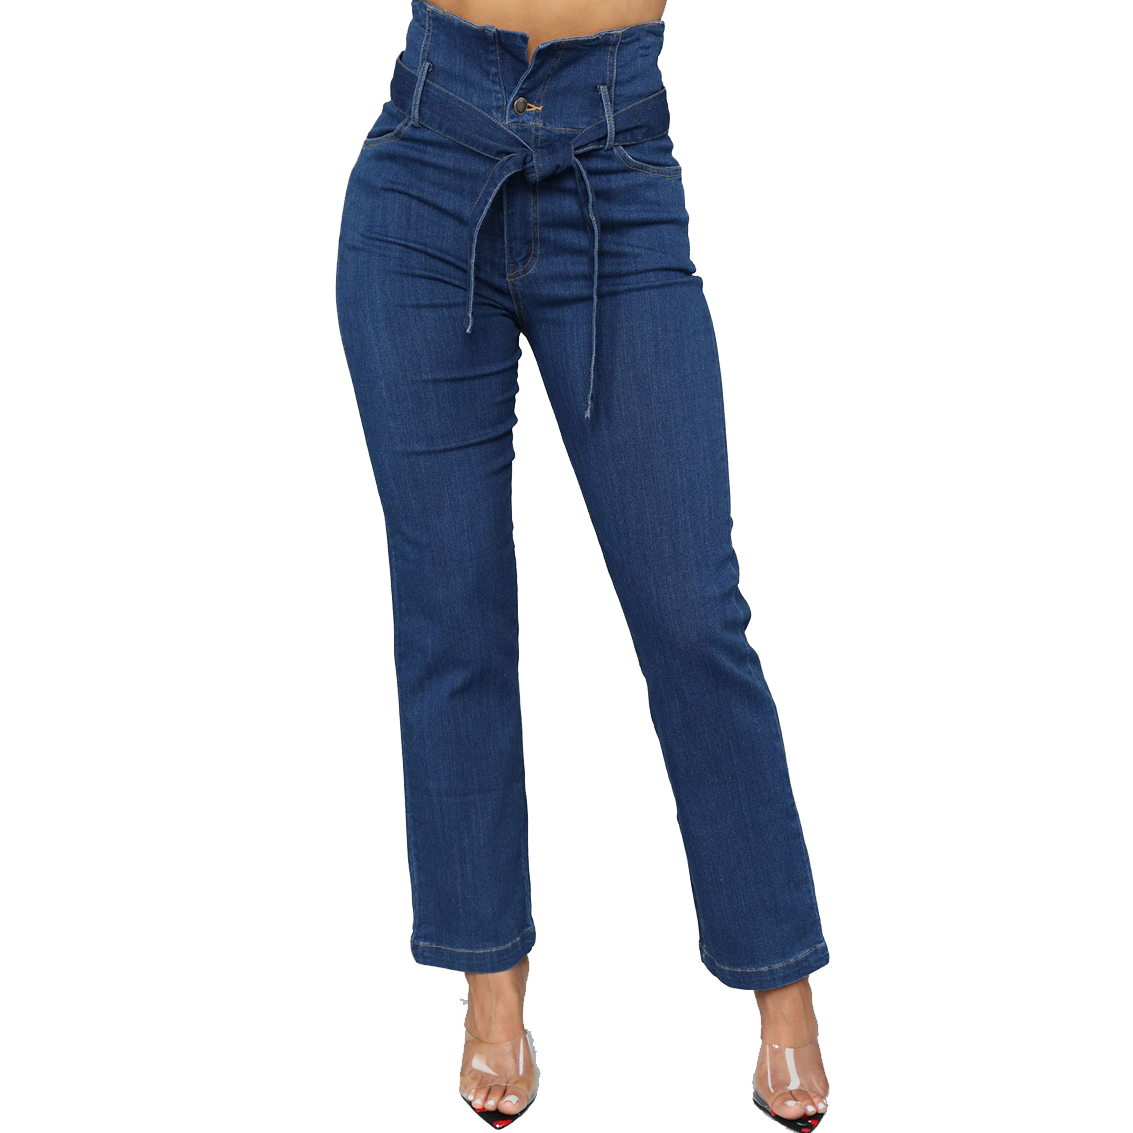 Ripped hole fashion Jeans Women High Waist wide leg Denim Pants Stretchy Stretch embroidery sexy women Jeans loose fit jeans